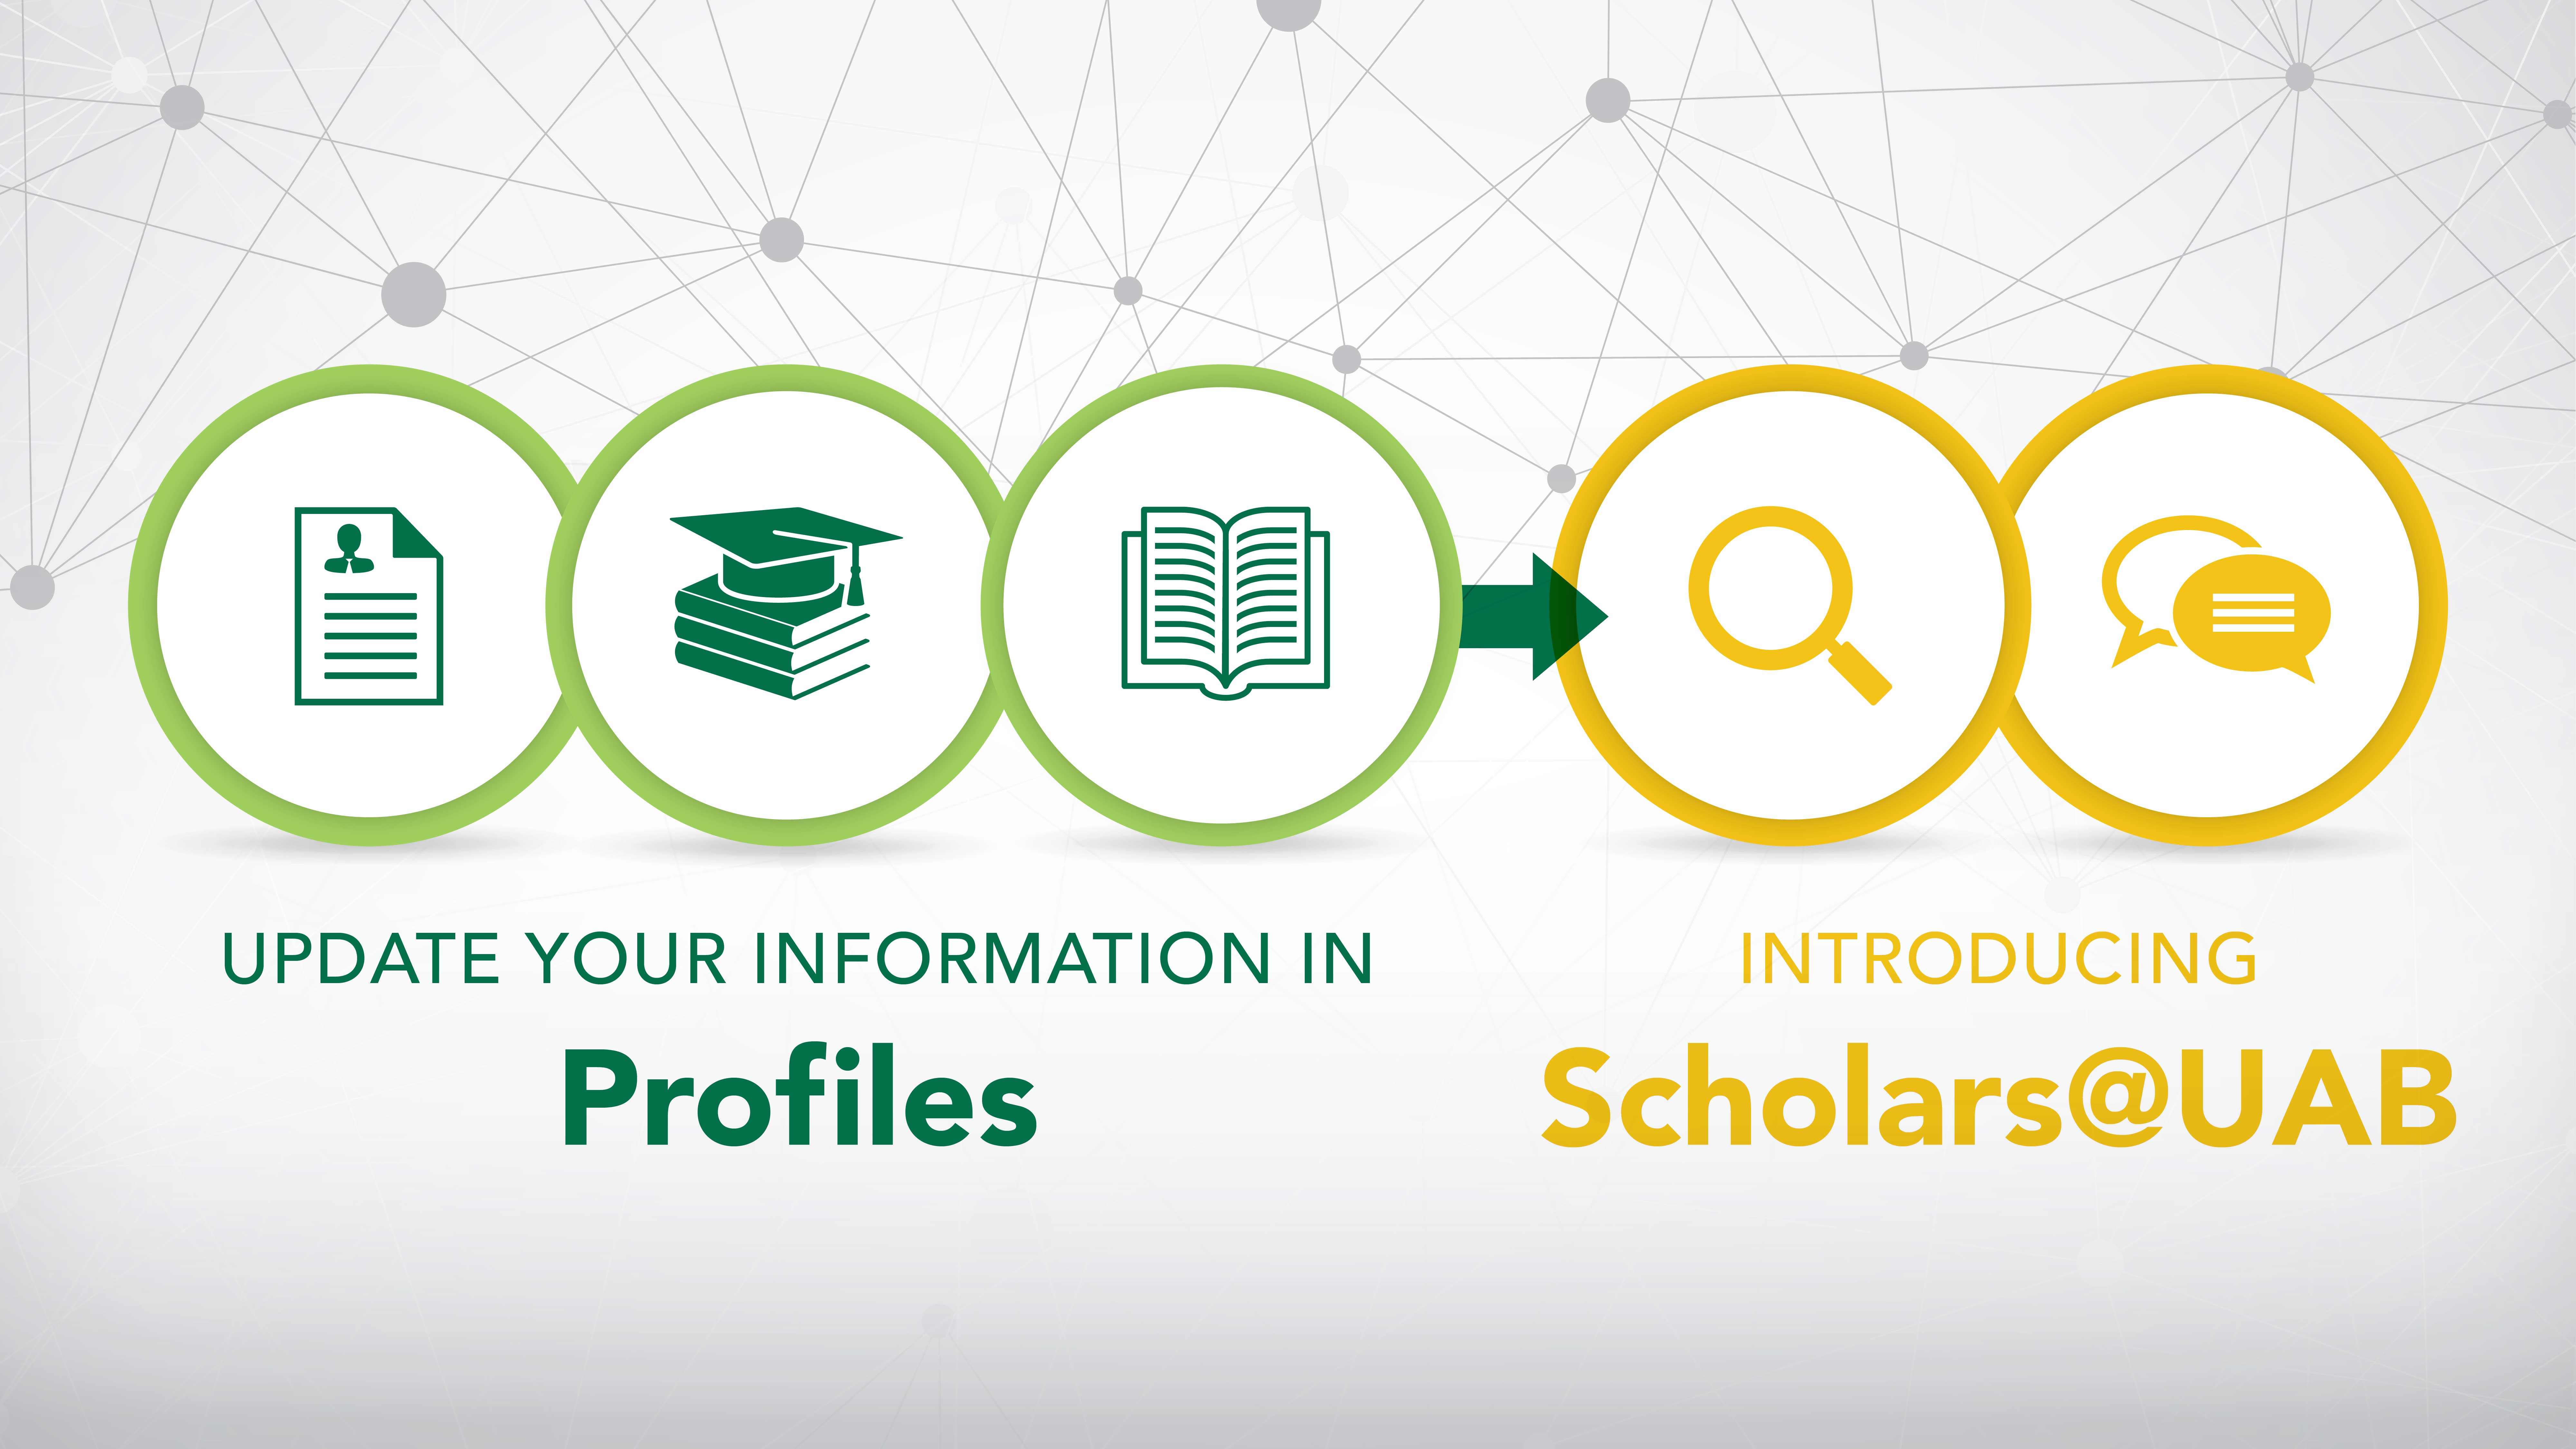 Update your information in Profiles - Introducing Scholars at UAB